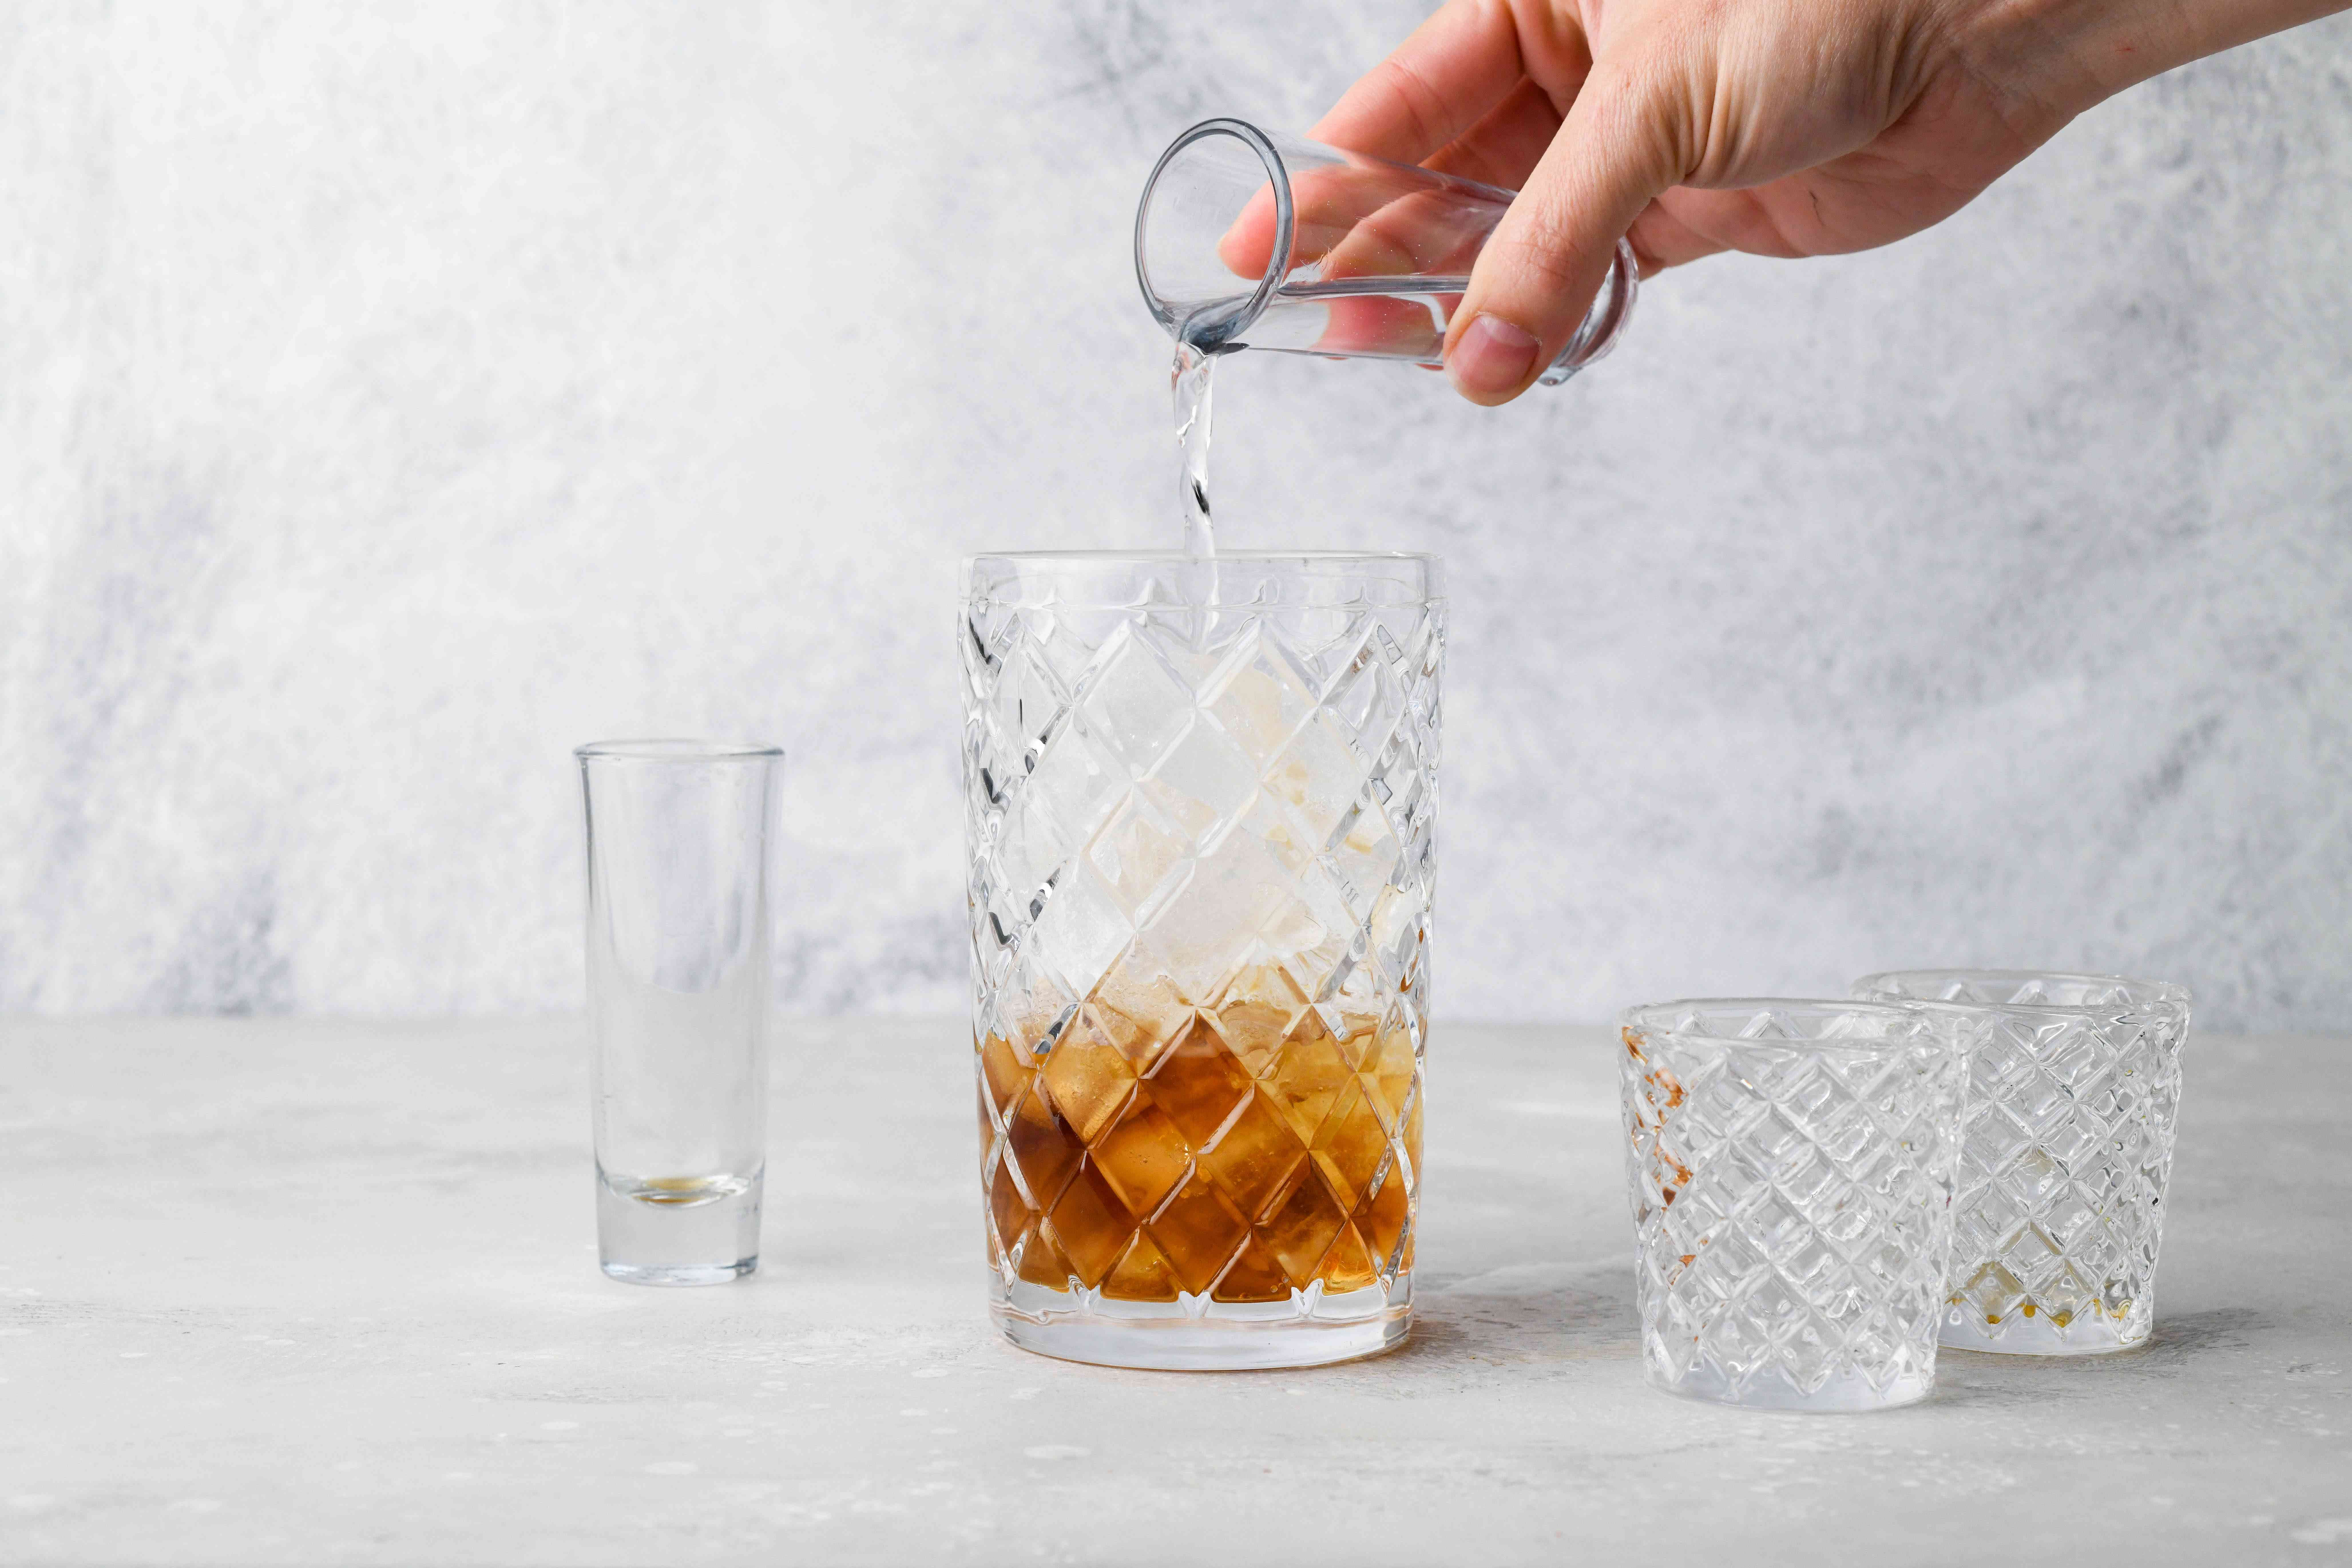 In a cocktail shaker filled with ice, pour the ingredients